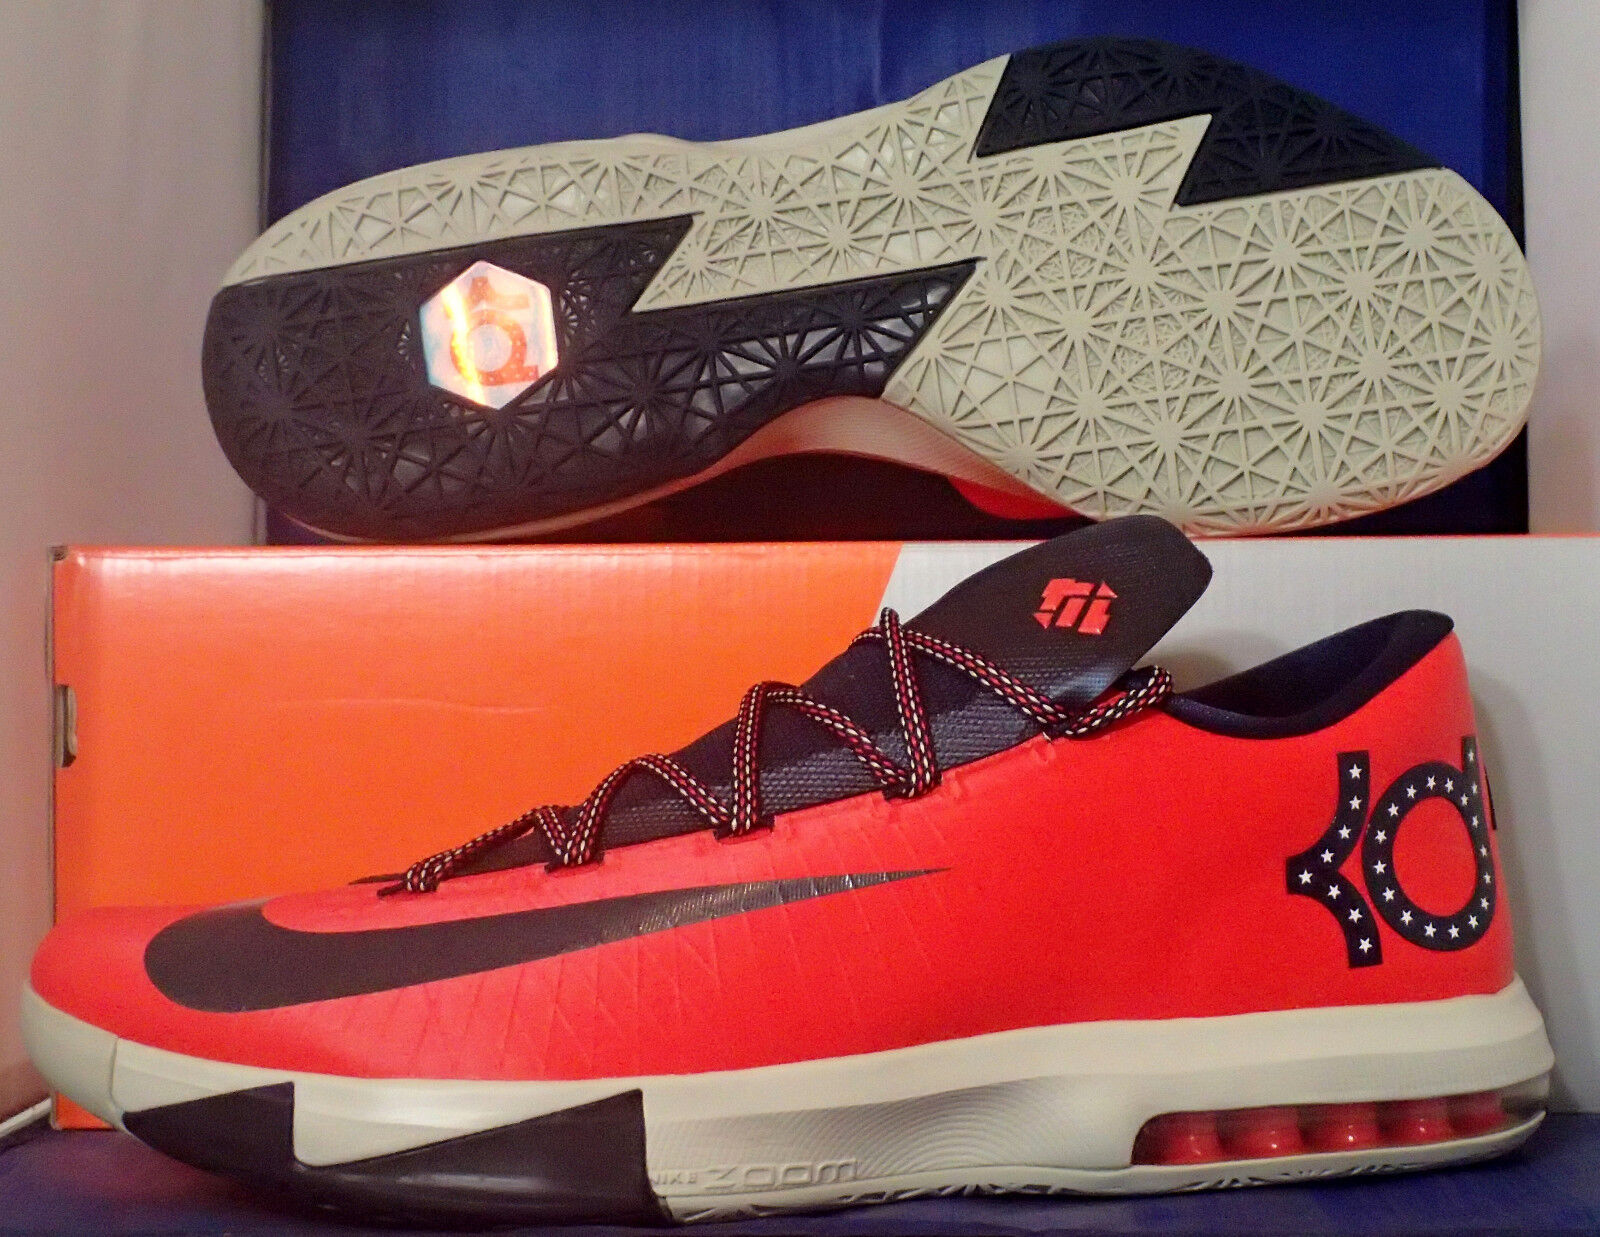 Nike kd vi 6 washington usa kevin durant sz 15 (599424-600)